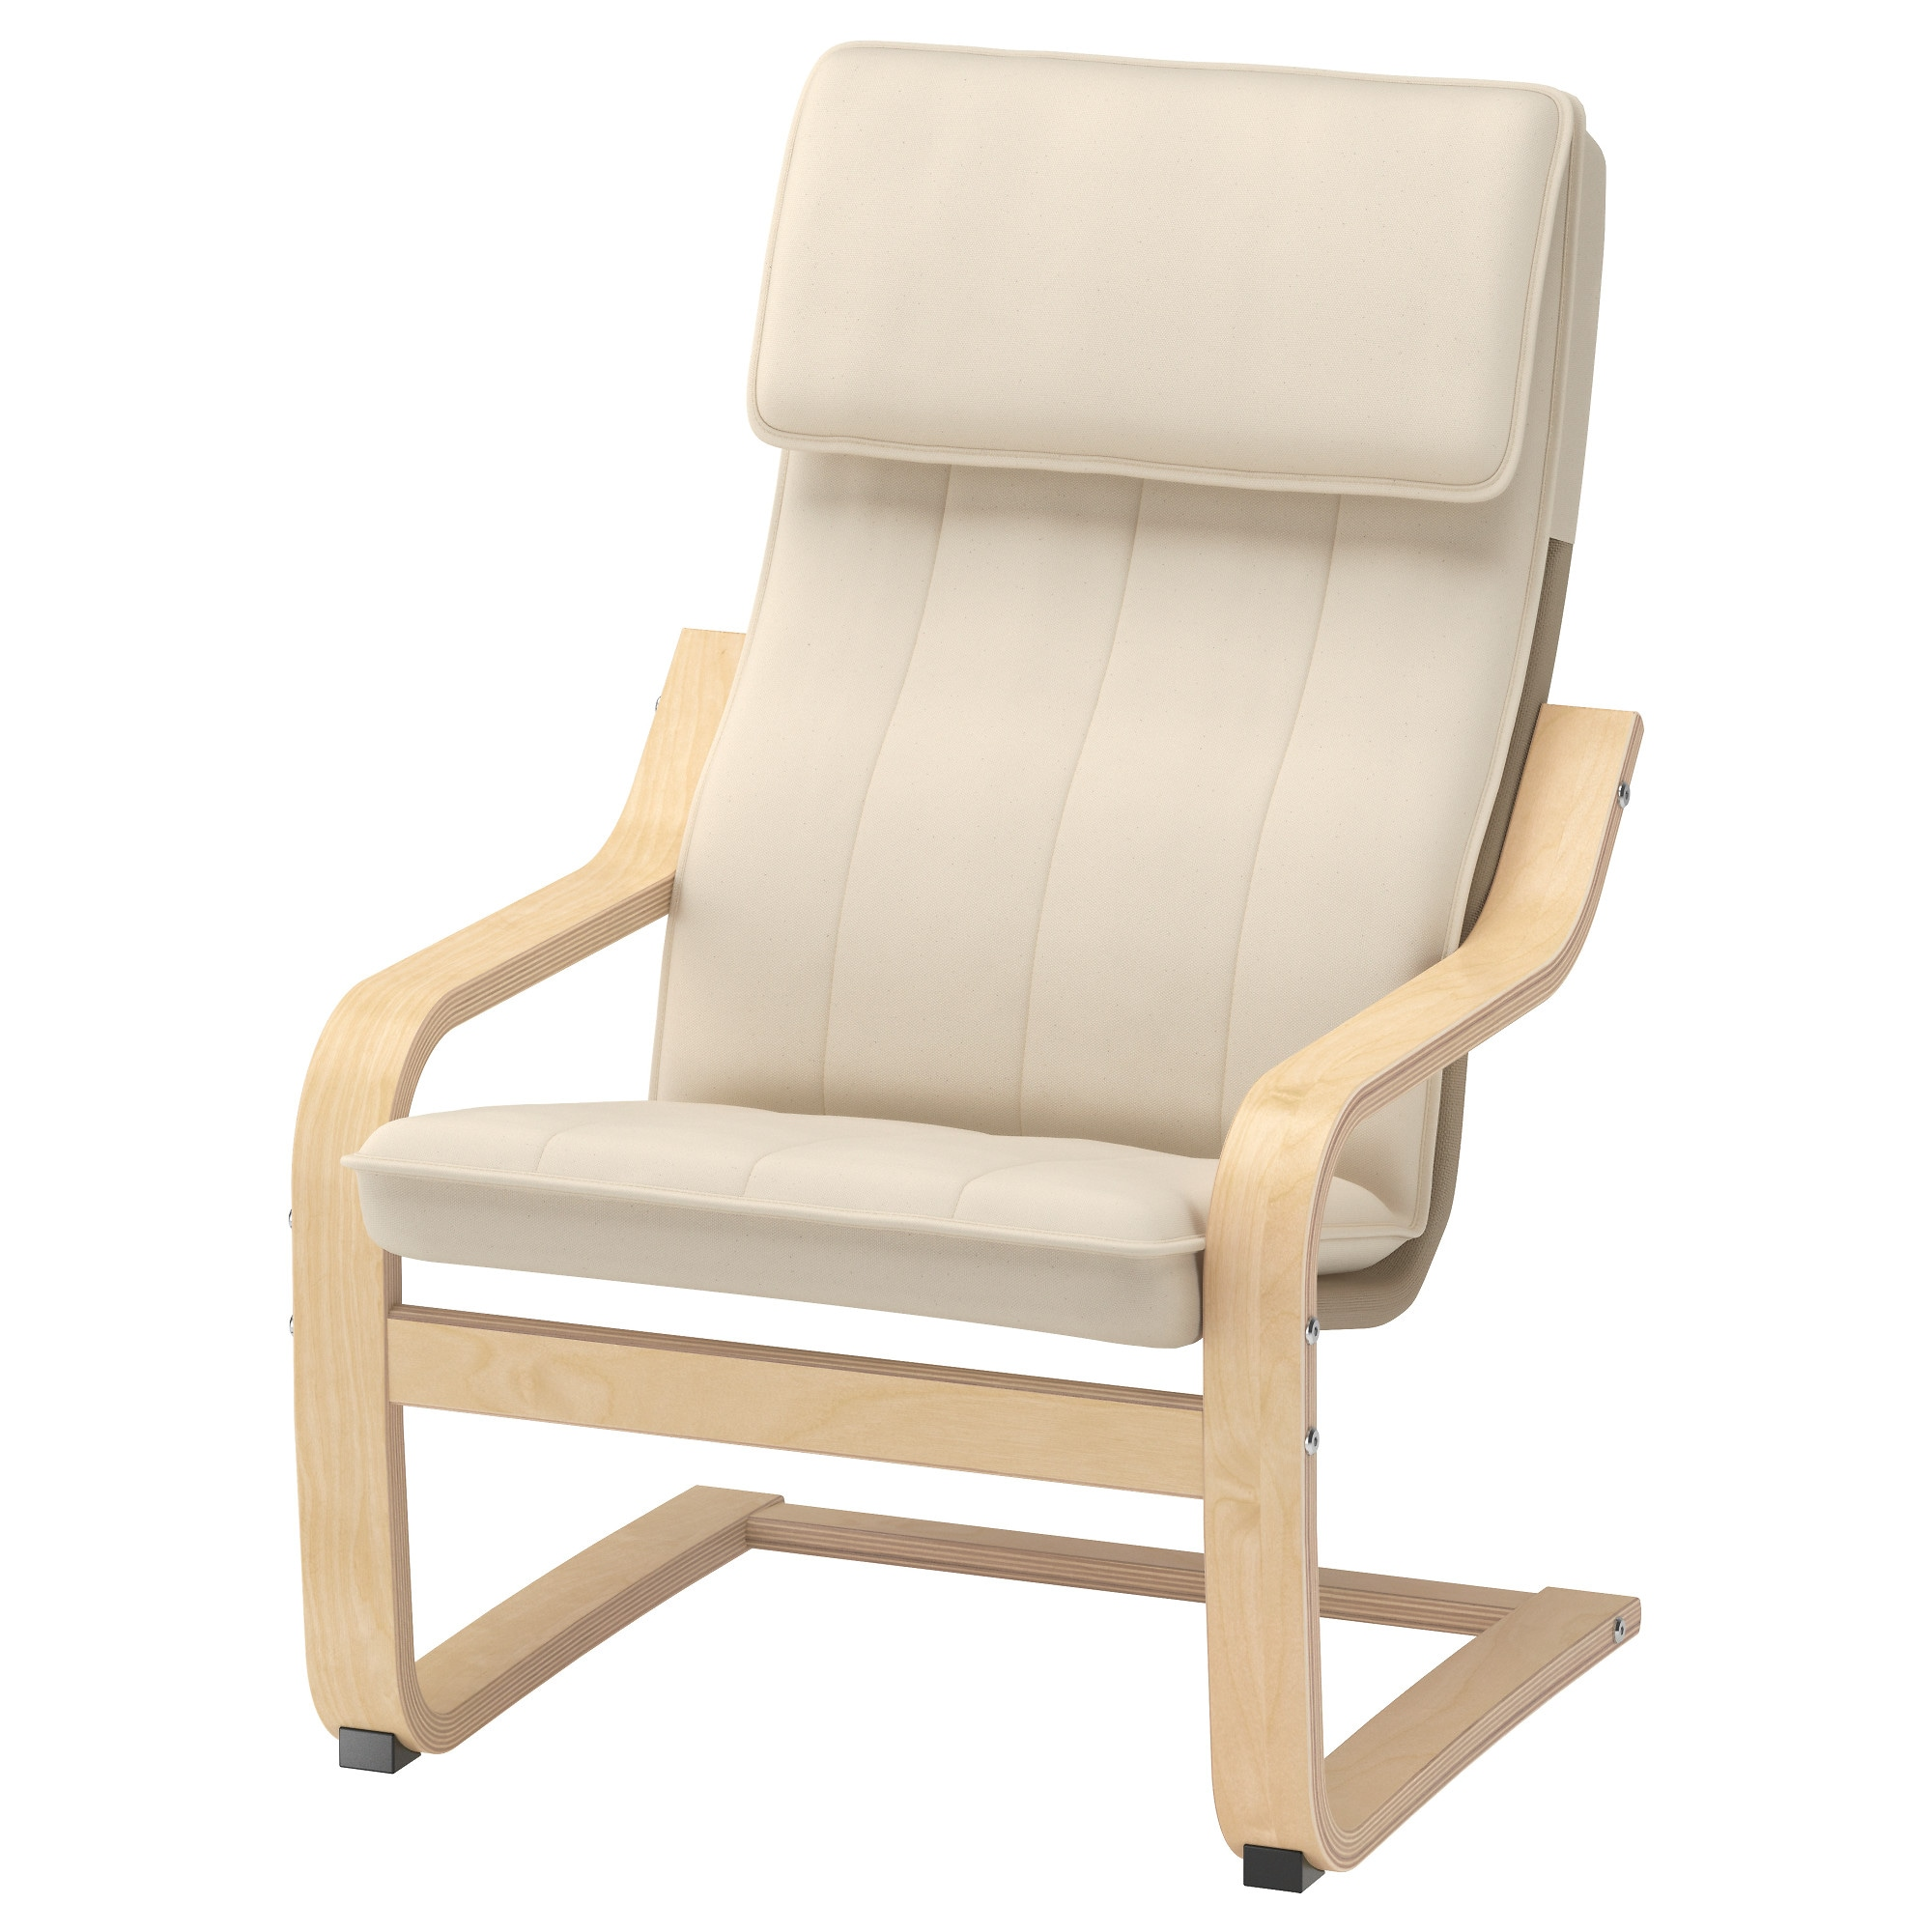 "PO""NG Children s armchair birch veneer Alm¥s natural IKEA"